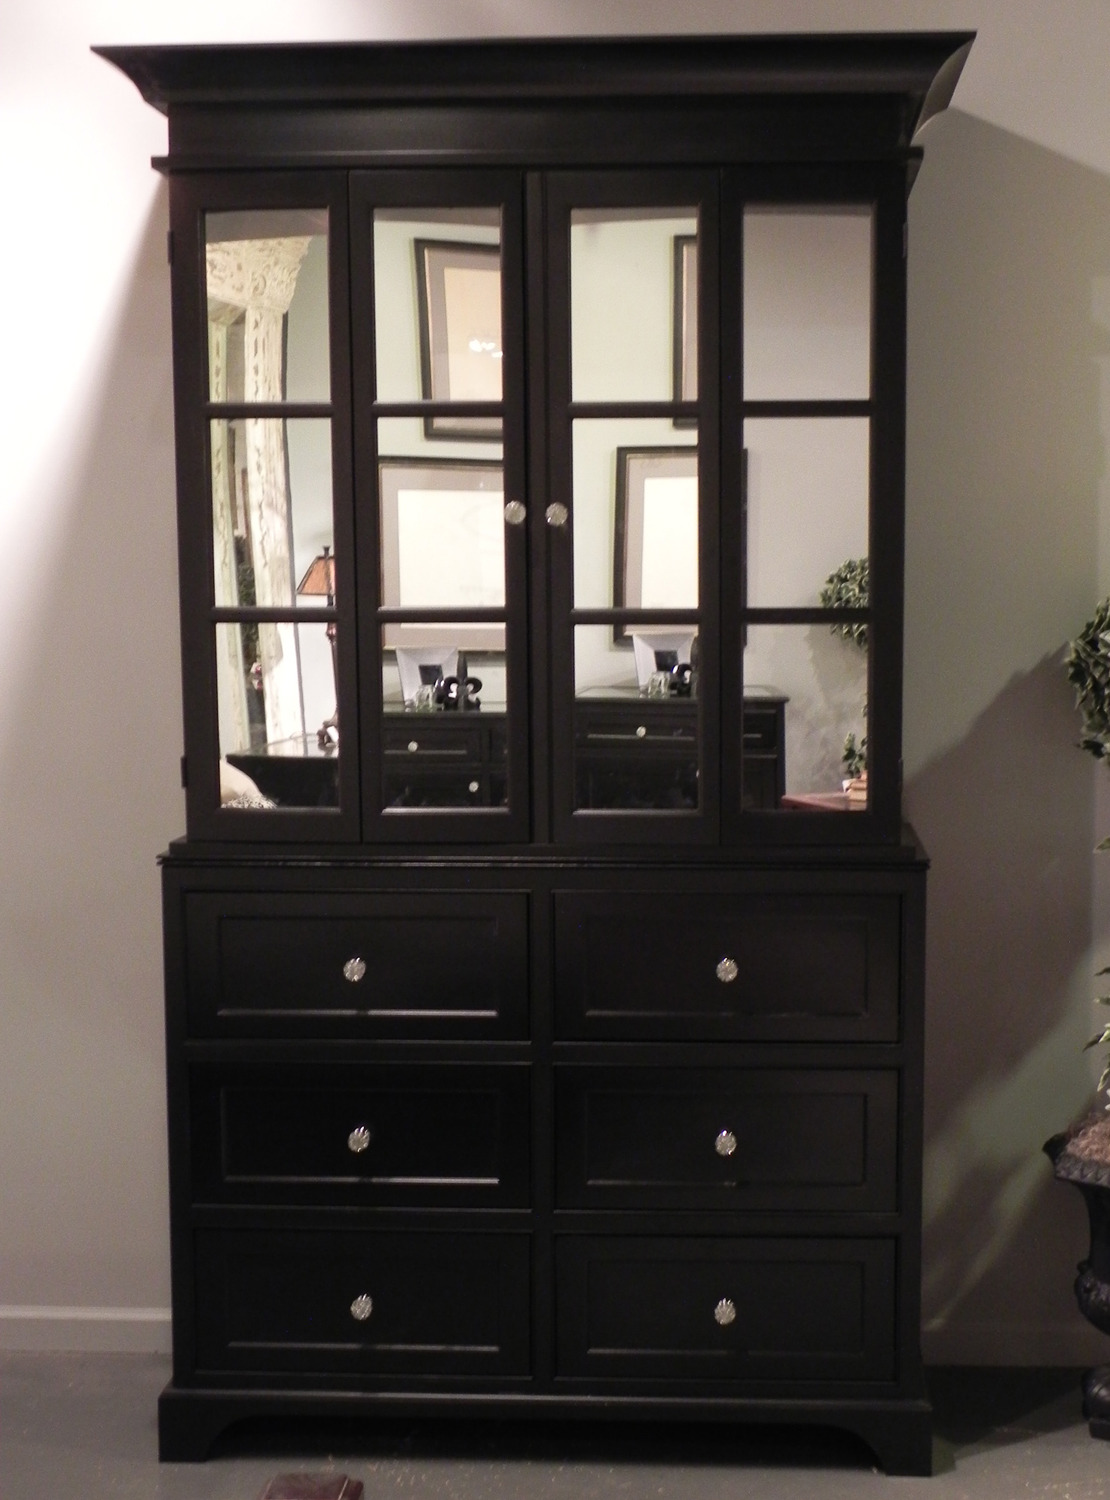 Tv Cabinets with Doors Awesome Tv Cabinets Linen Presses Englishman S Fine Furnishings